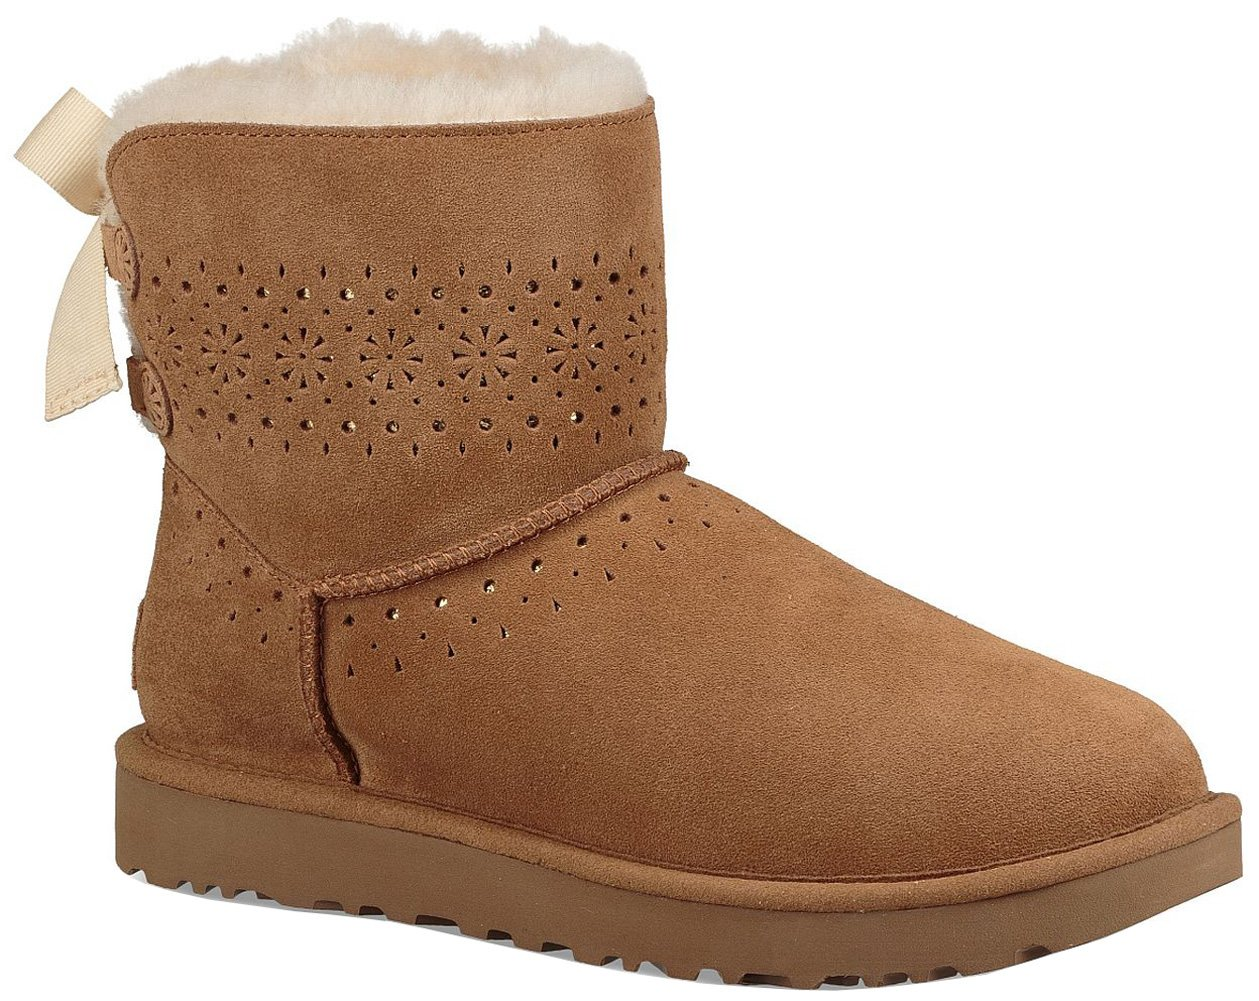 UGG Womens Dae Sunshine Perf Boot, Chestnut, Size 9 by UGG